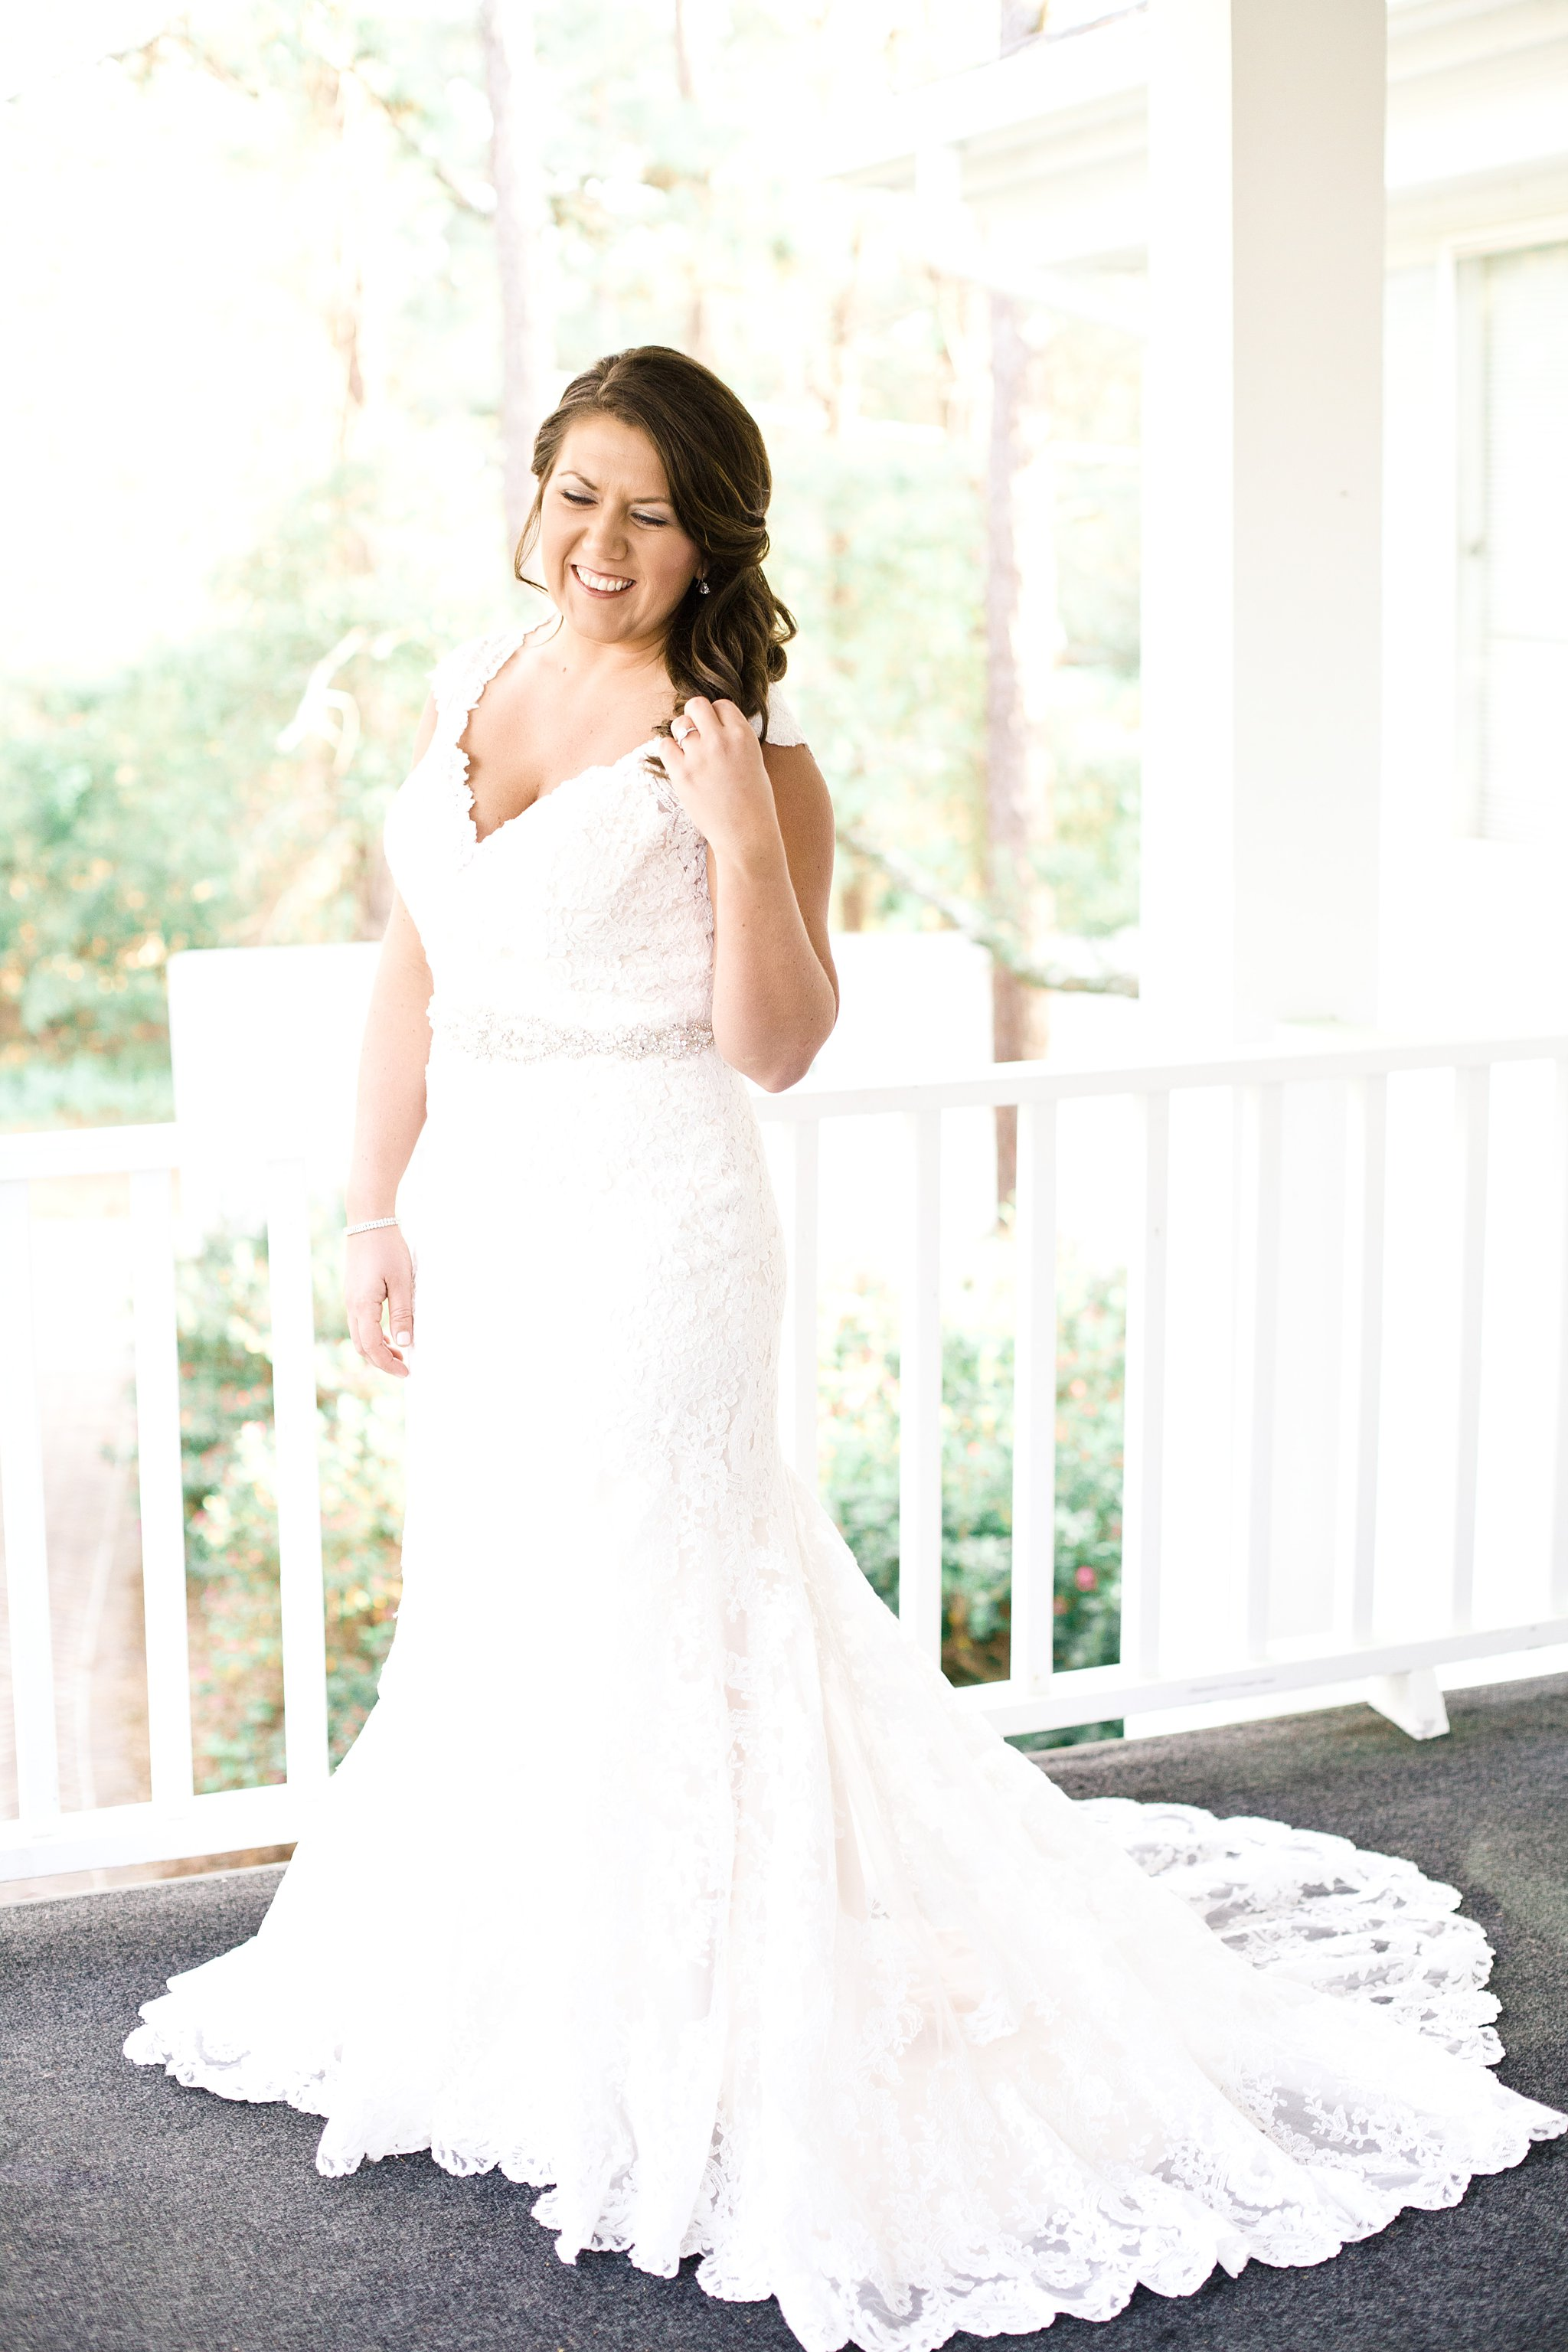 litchfield-golf-country-club-bridal-session-pawleys-island-sc-photos_0151.jpg